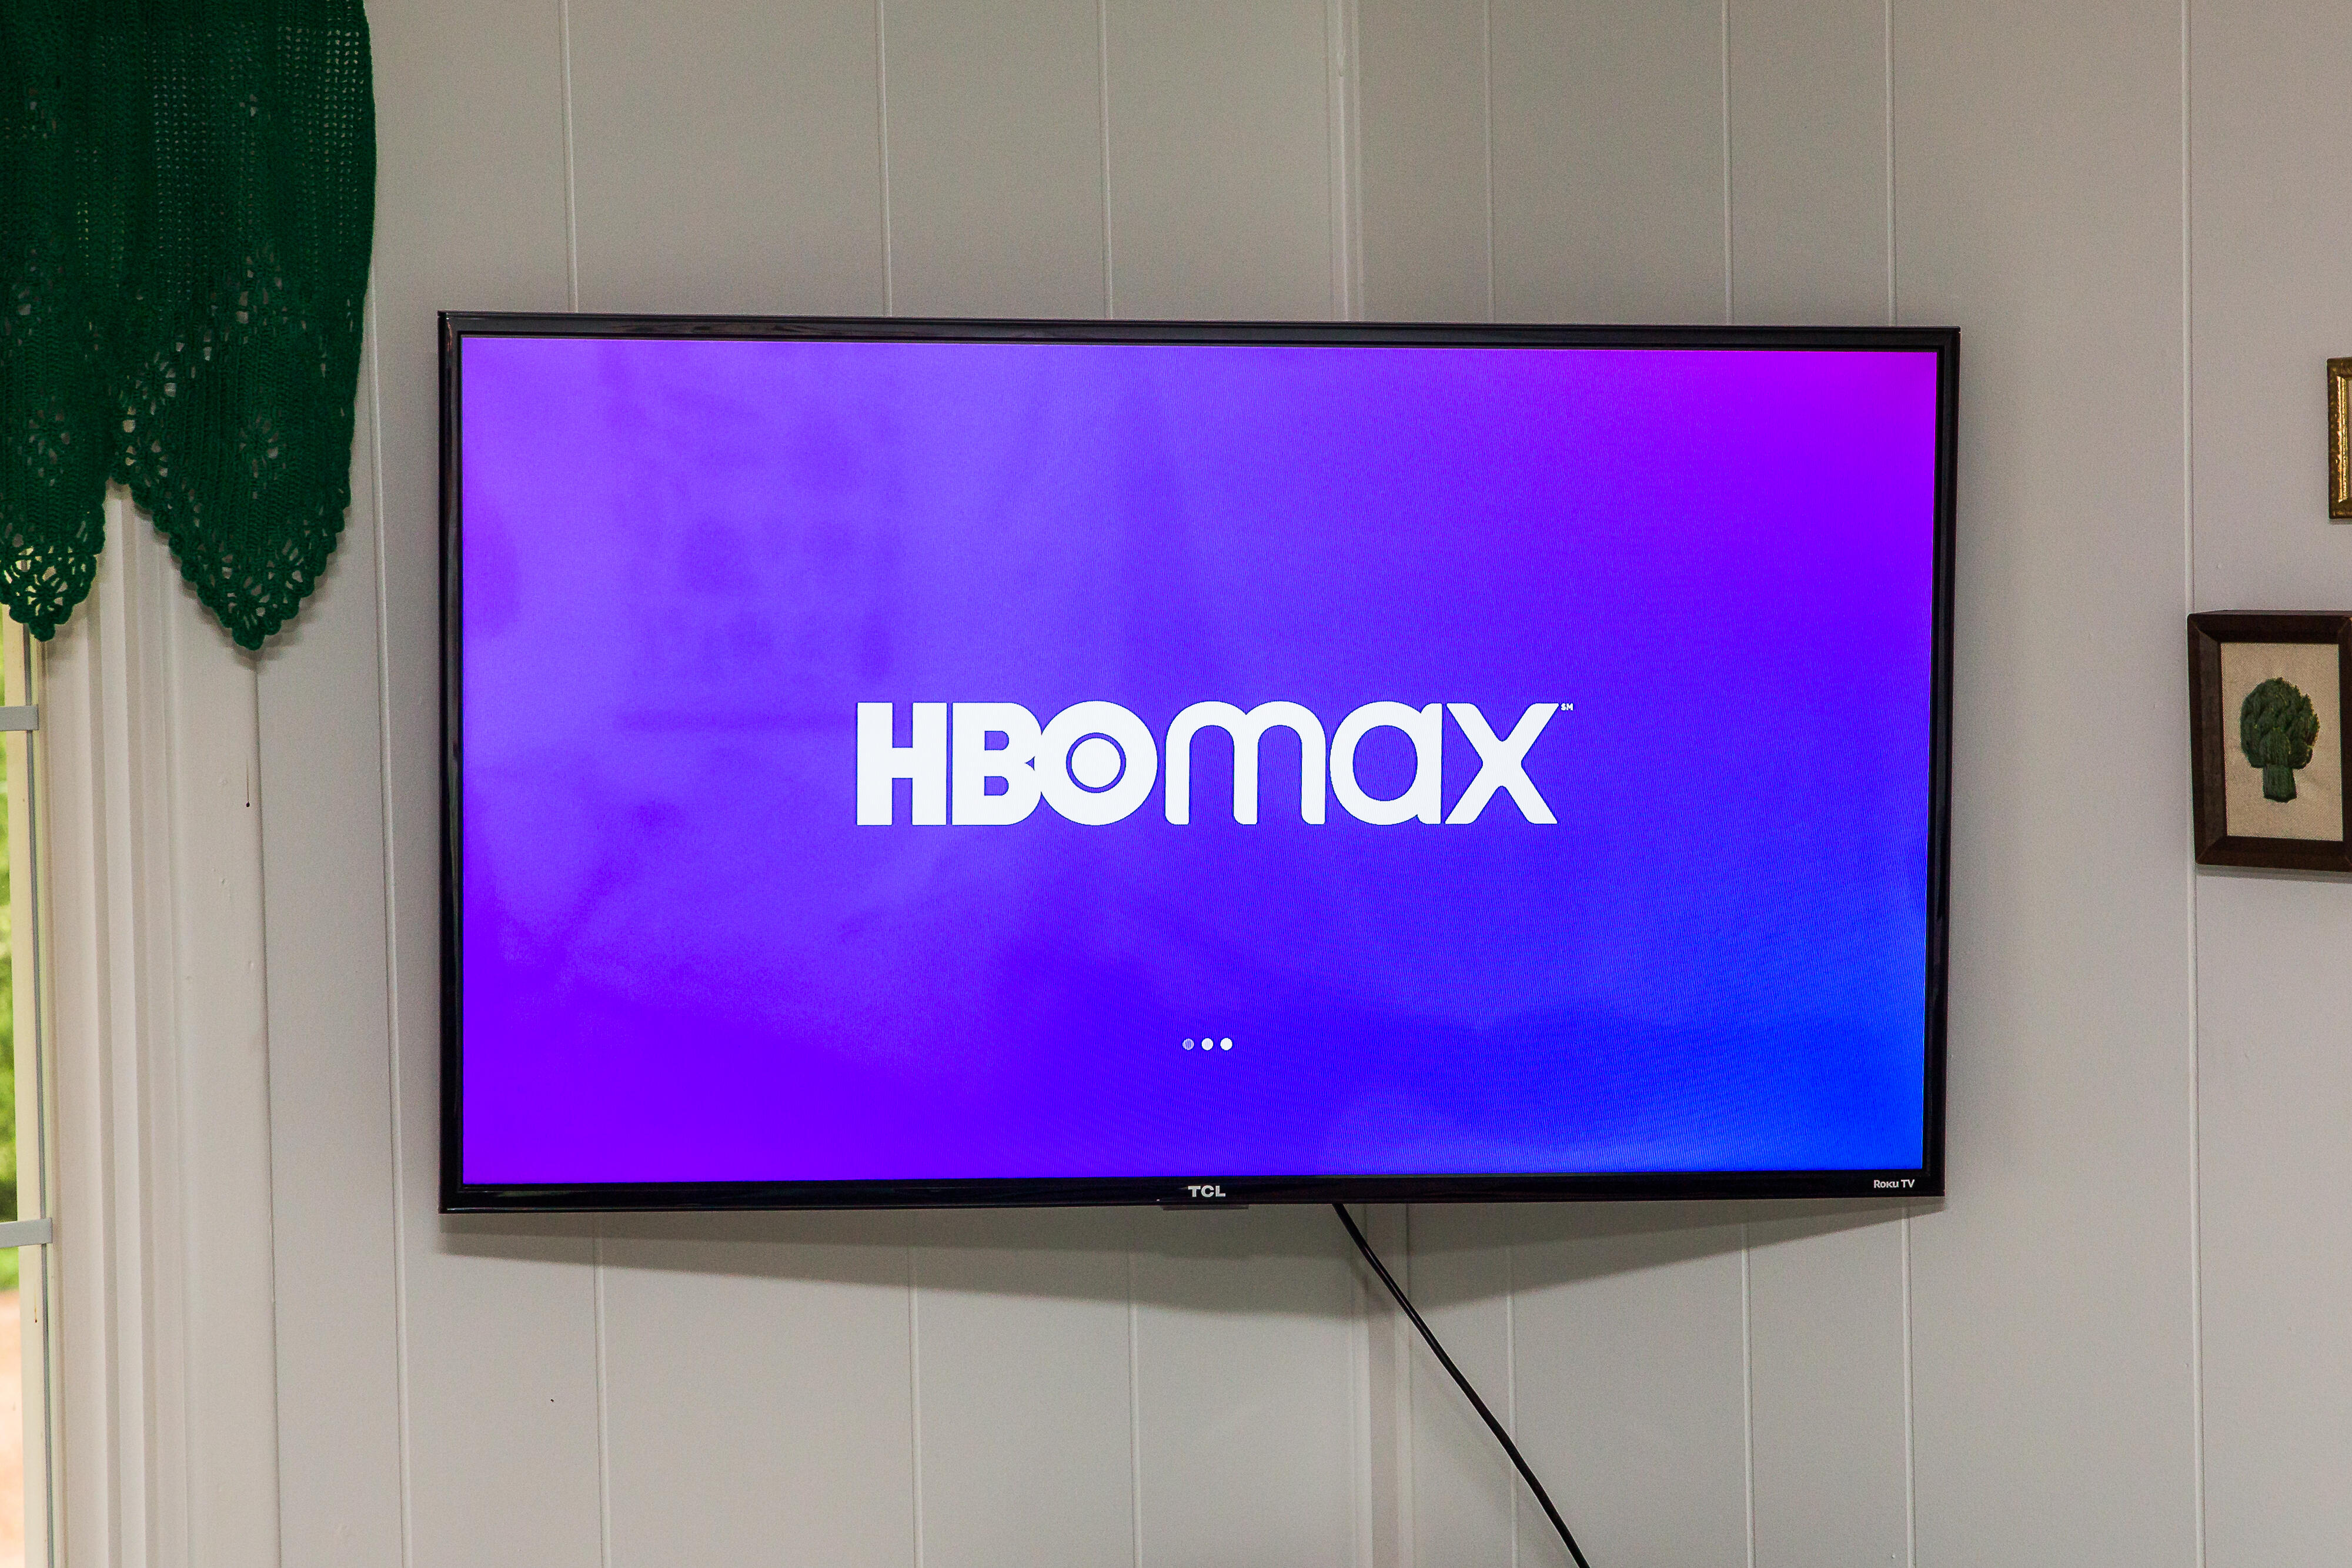 002-hbo-max-profiles-parental-controls-and-carousel